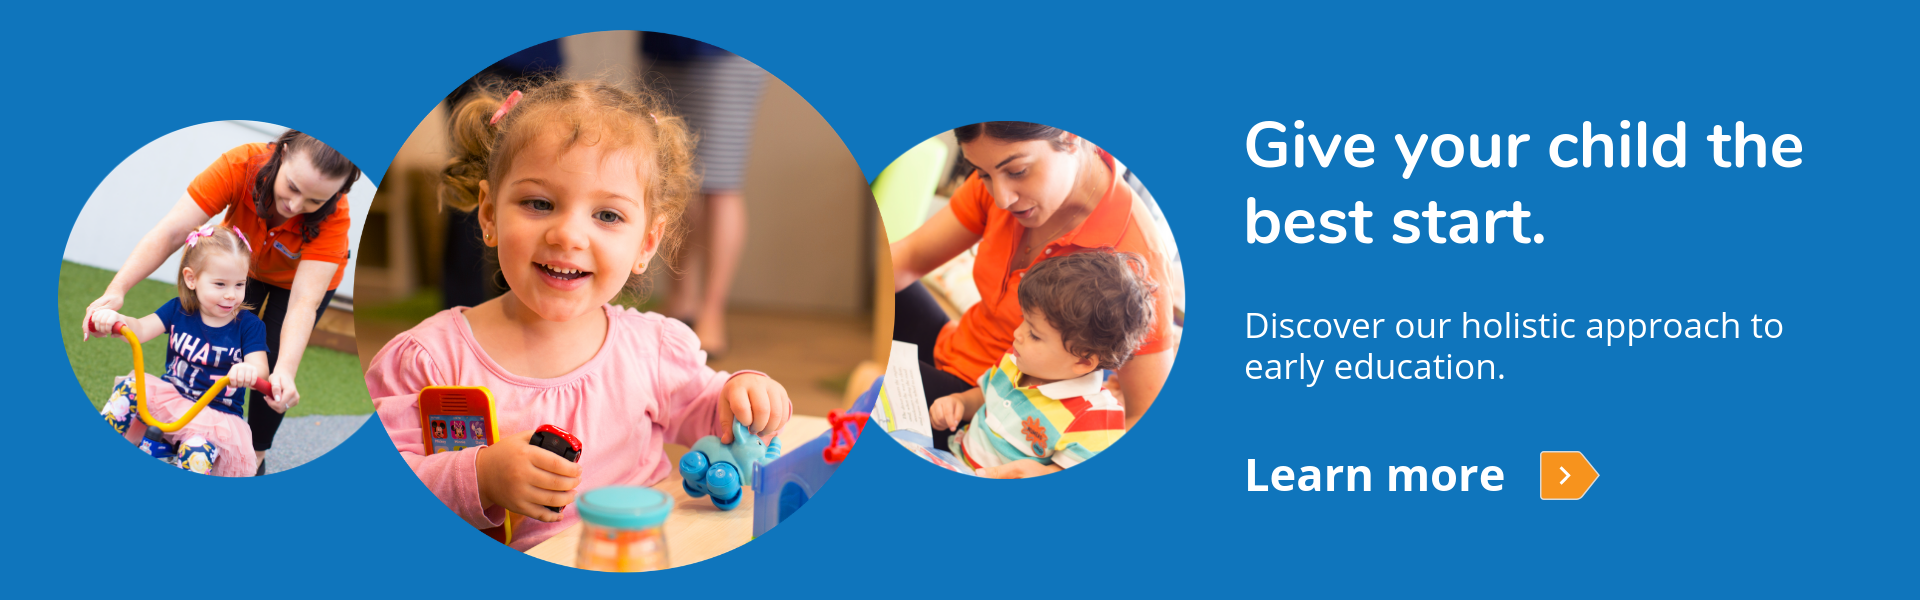 Give your child the best start - discover our holistic approach to early education